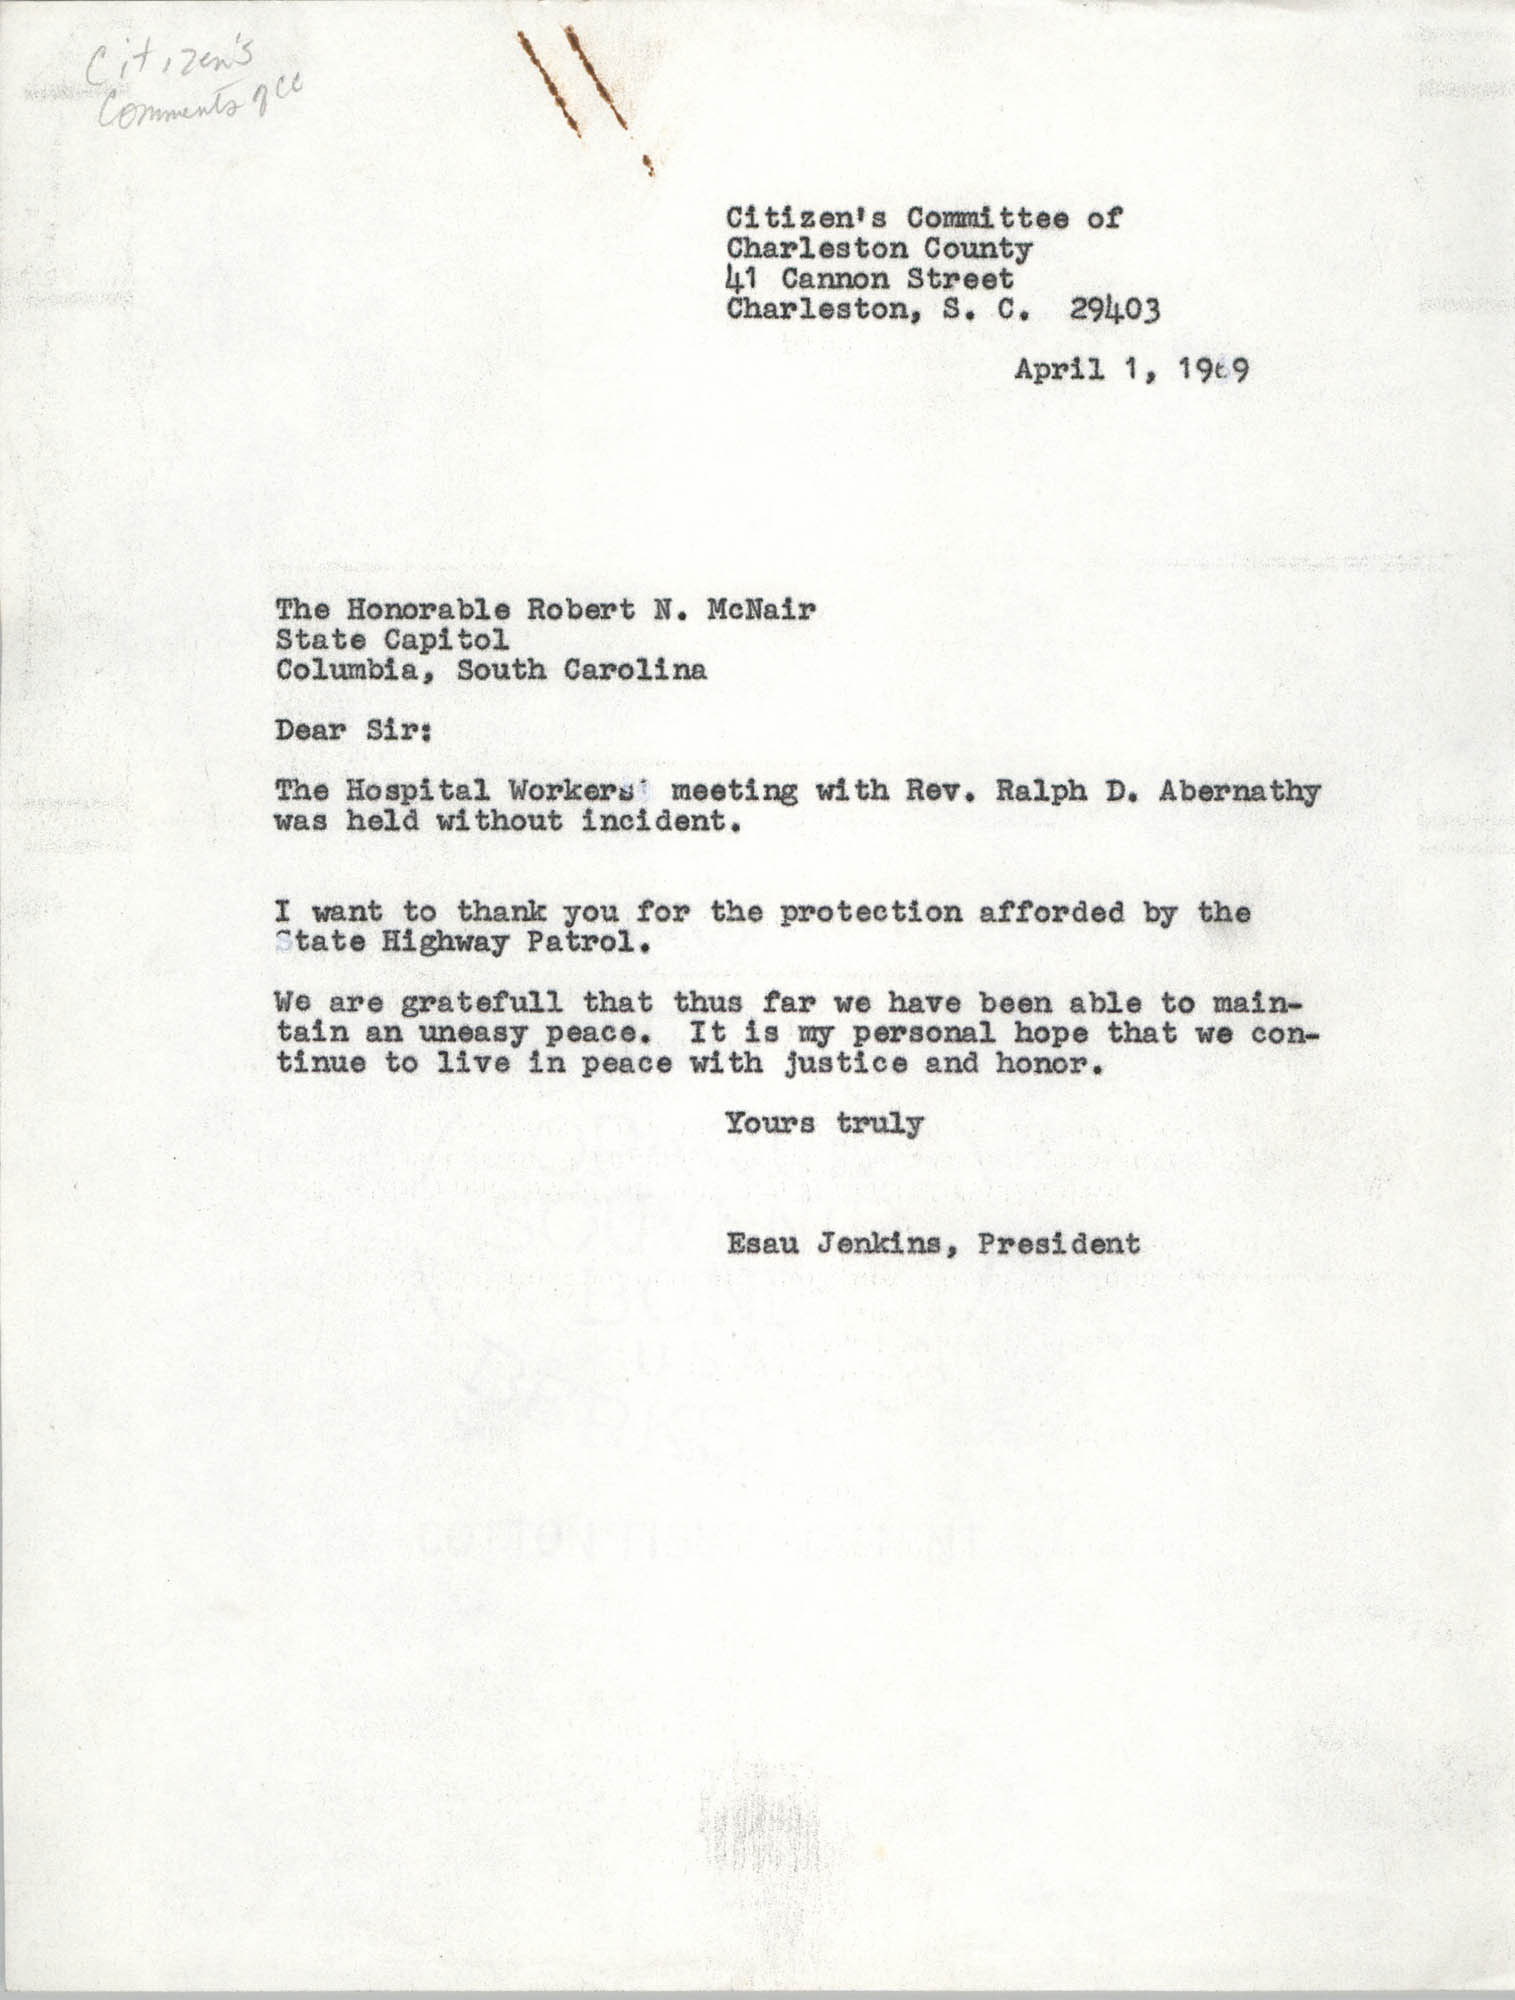 Letter from Esau Jenkins to Robert N. McNair, April 1, 1969